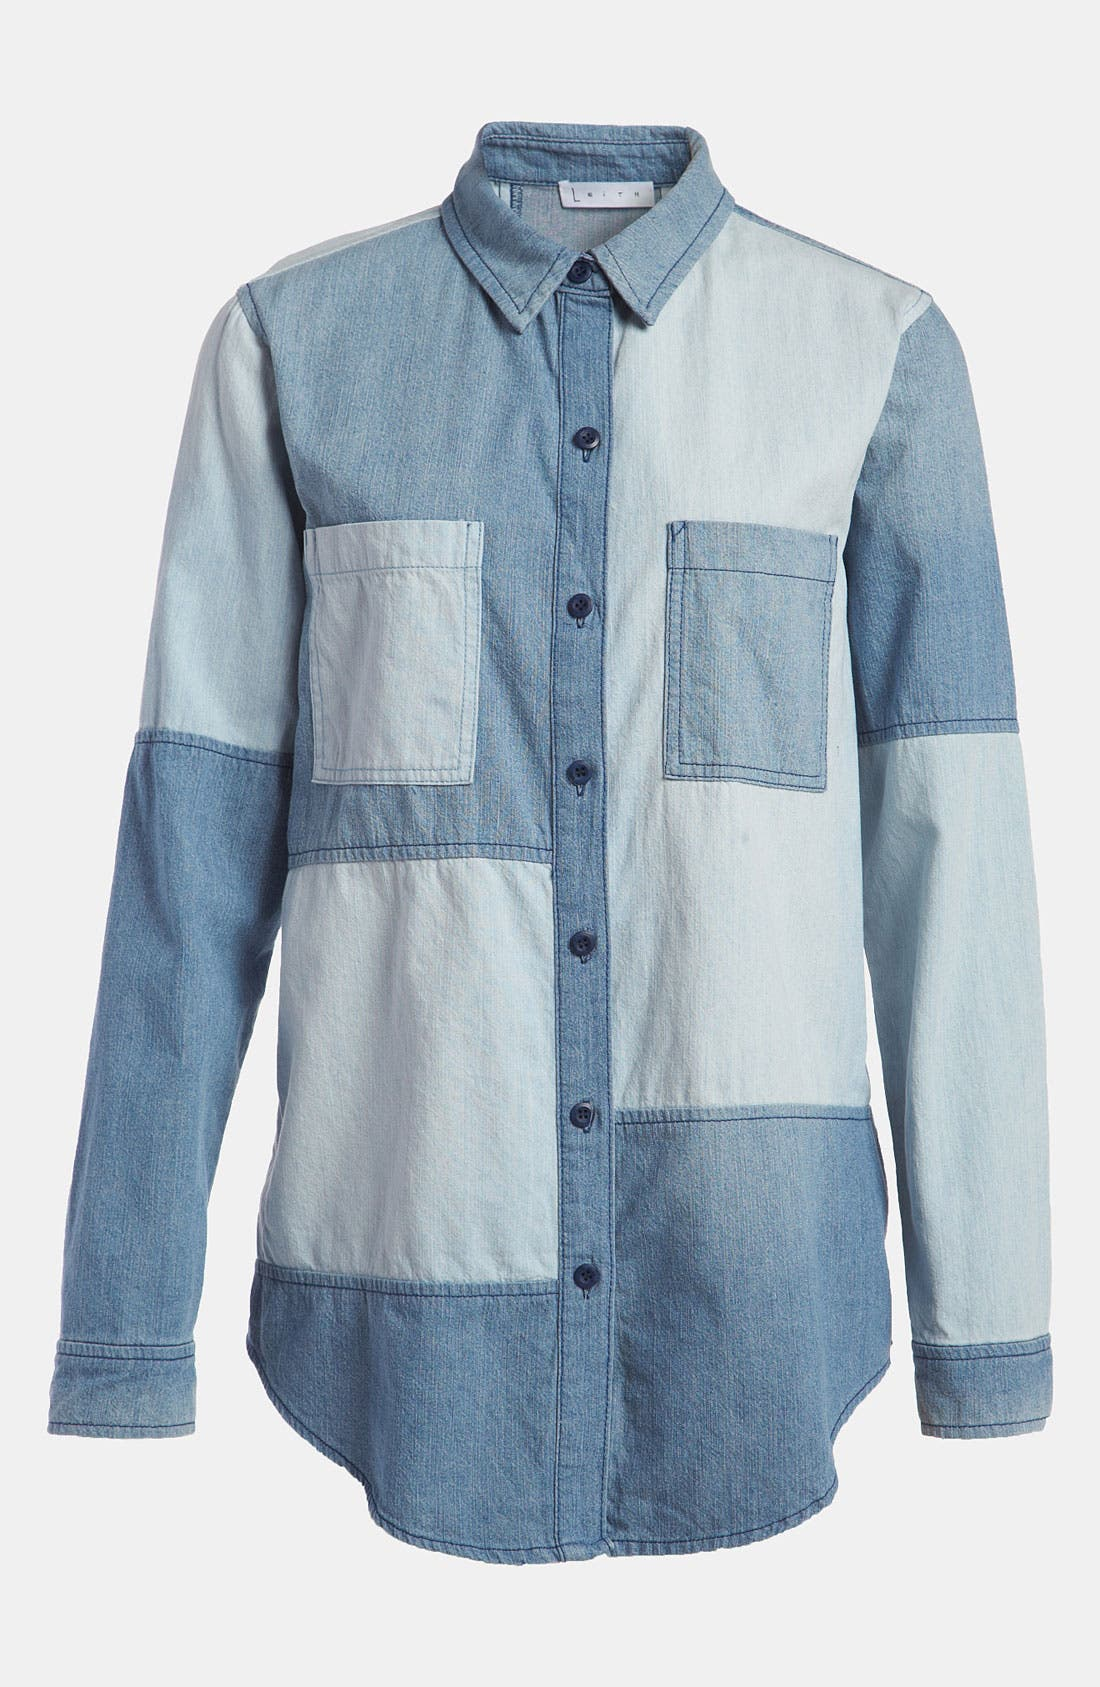 Alternate Image 1 Selected - Leith Colorblock Chambray Shirt